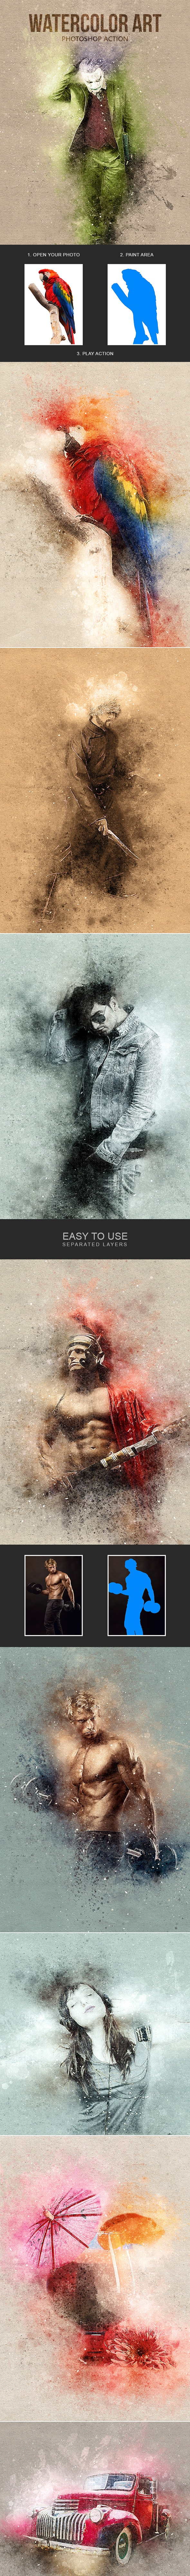 Watercolor Art - Photoshop Action - Photo Effects Actions